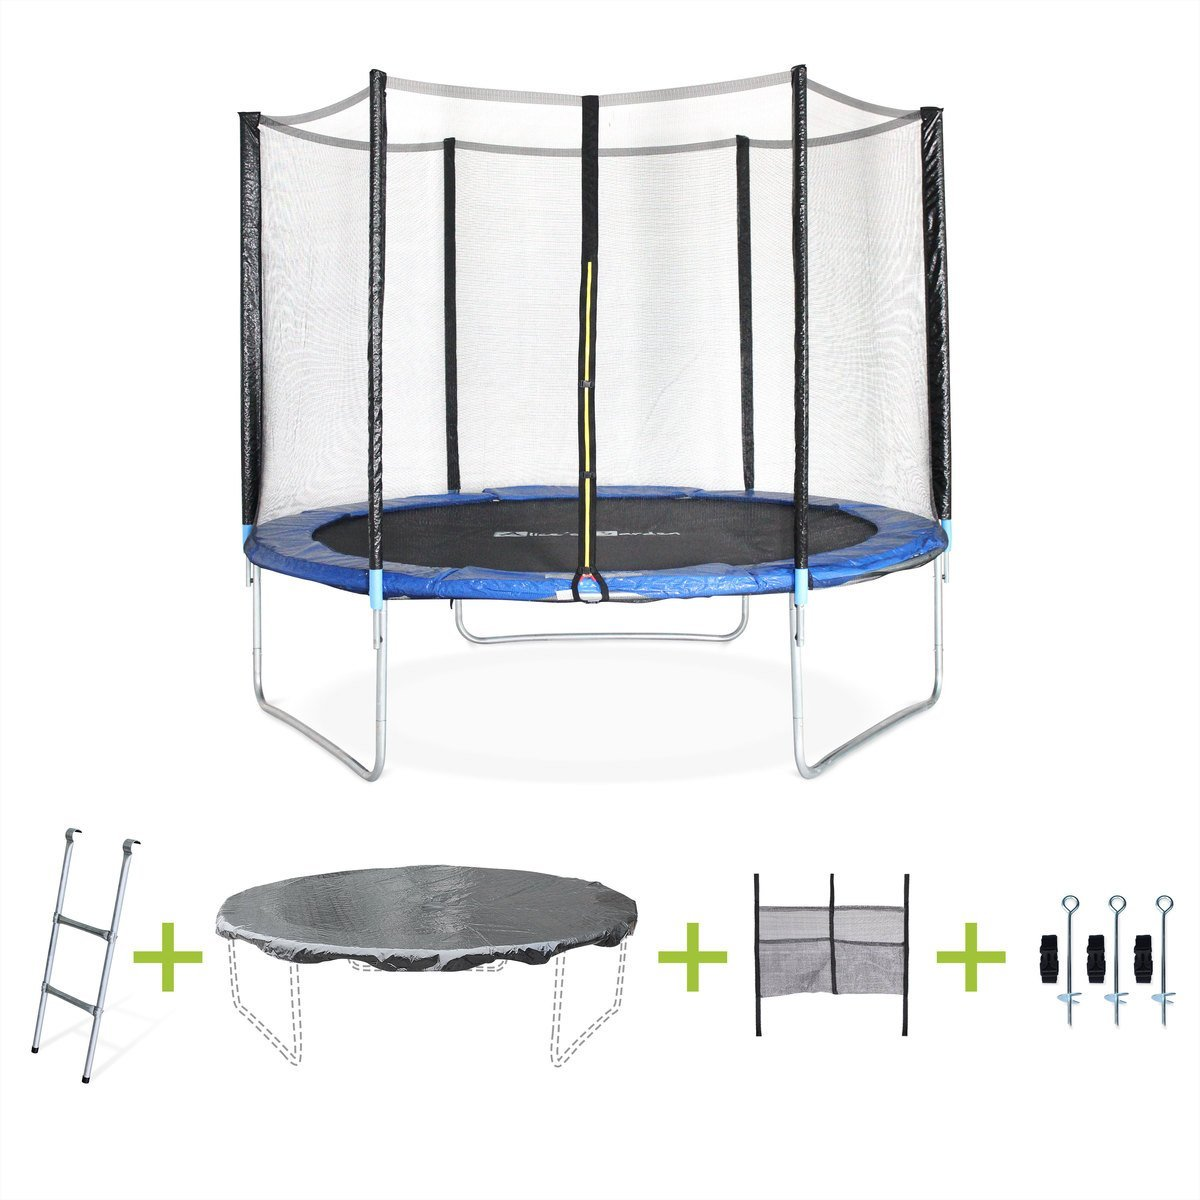 guide d achat d un trampoline pas cher meilleur trampoline. Black Bedroom Furniture Sets. Home Design Ideas